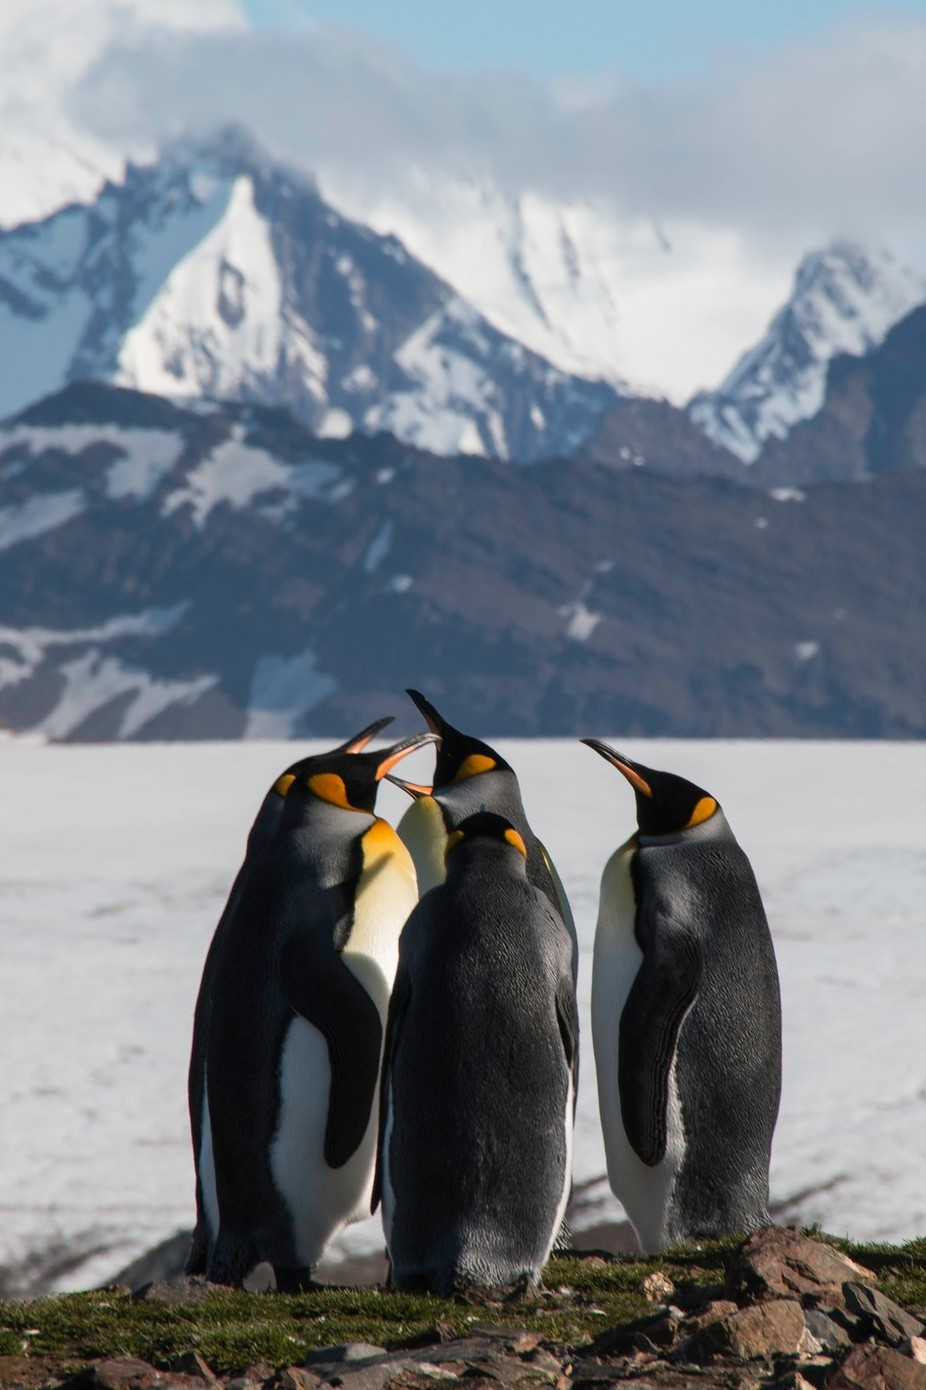 Huddle by bshaw - Around the World Photo Contest